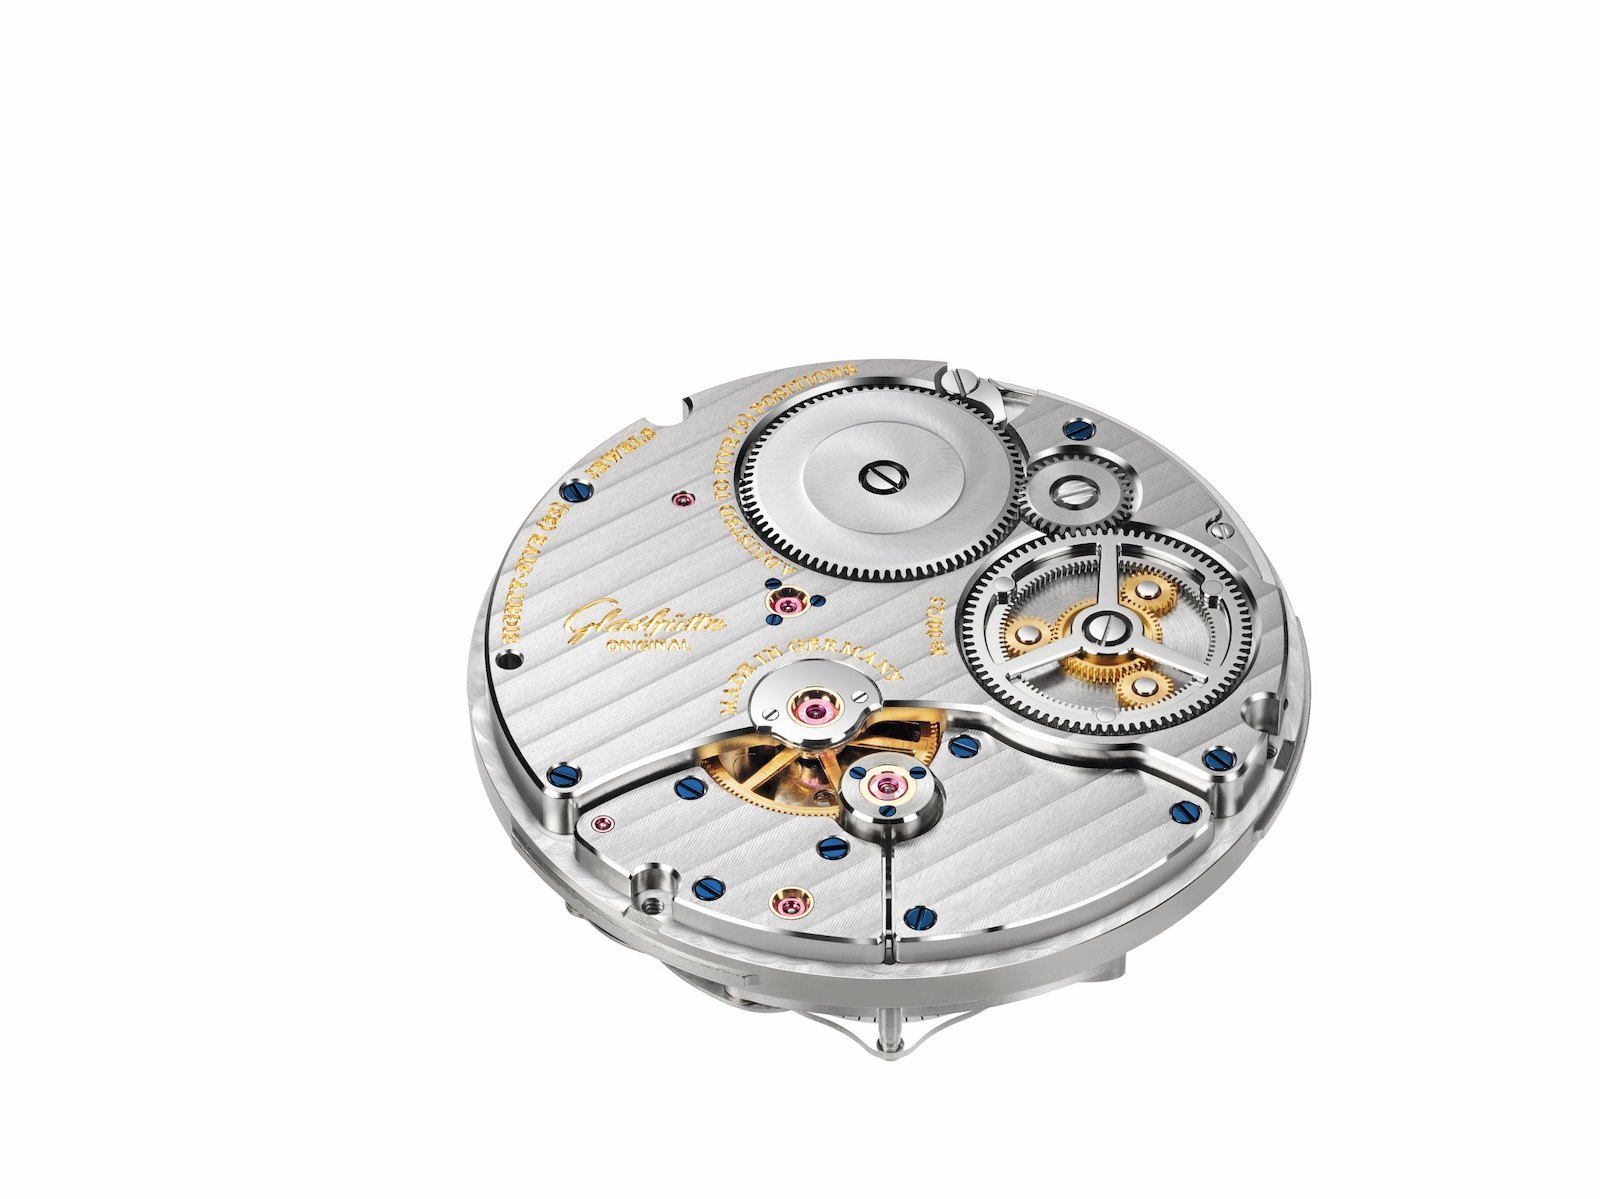 Glashutte Original Calibre 58-05